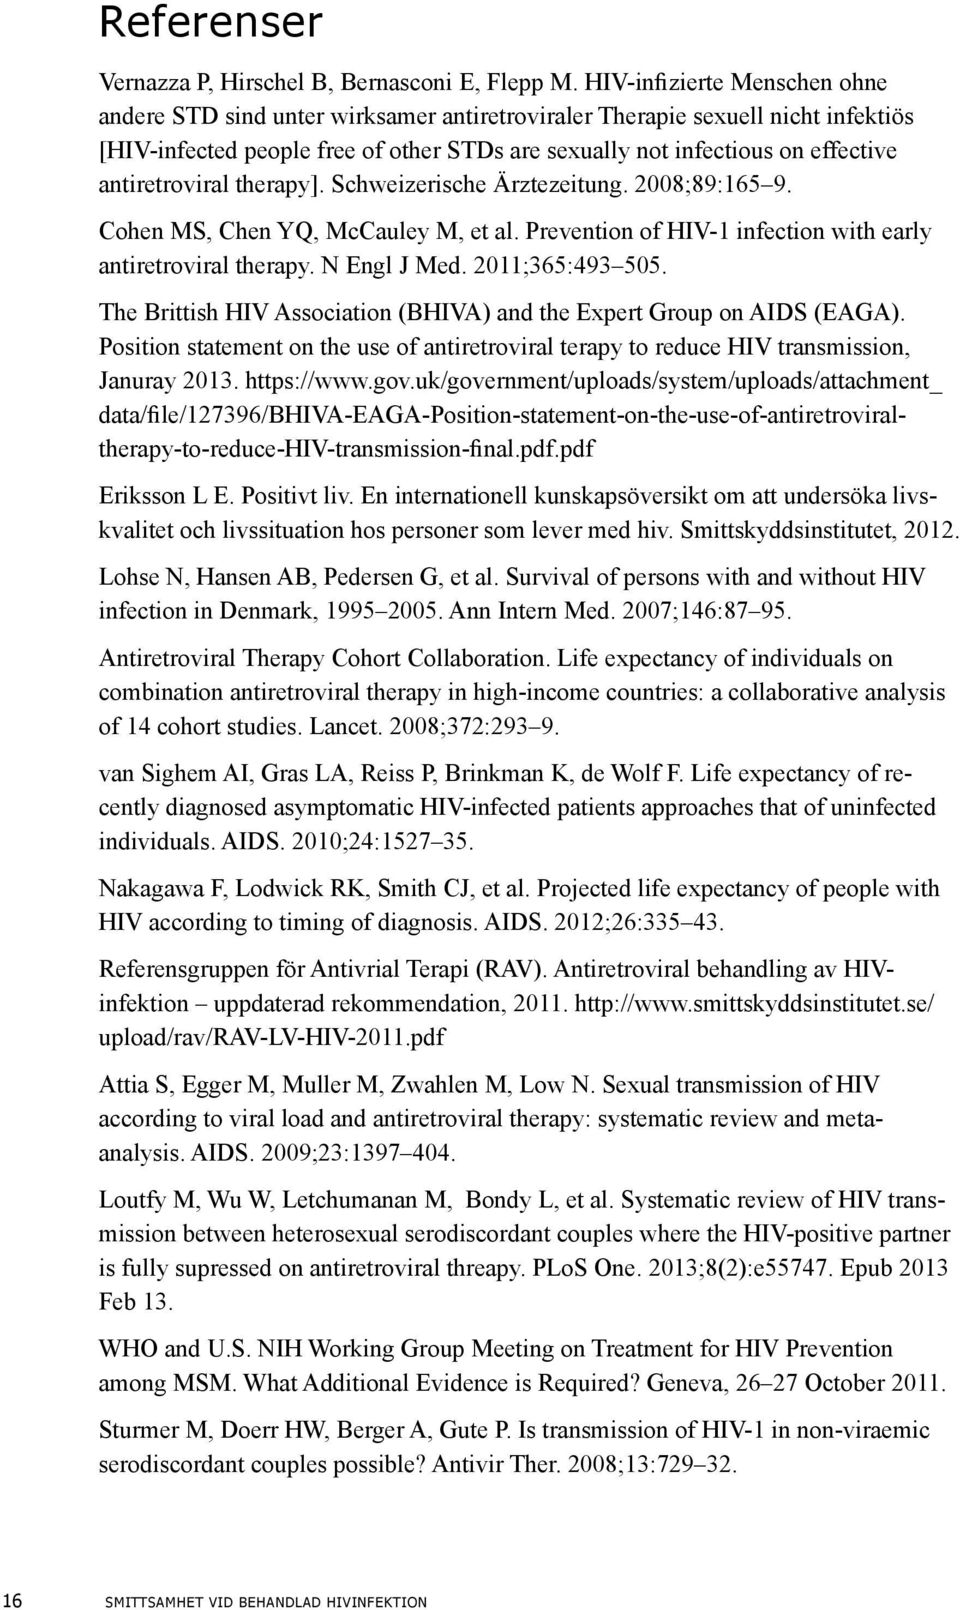 antiretroviral therapy]. Schweizerische Ärztezeitung. 2008;89:165 9. Cohen MS, Chen YQ, McCauley M, et al. Prevention of HIV-1 infection with early antiretroviral therapy. N Engl J Med.